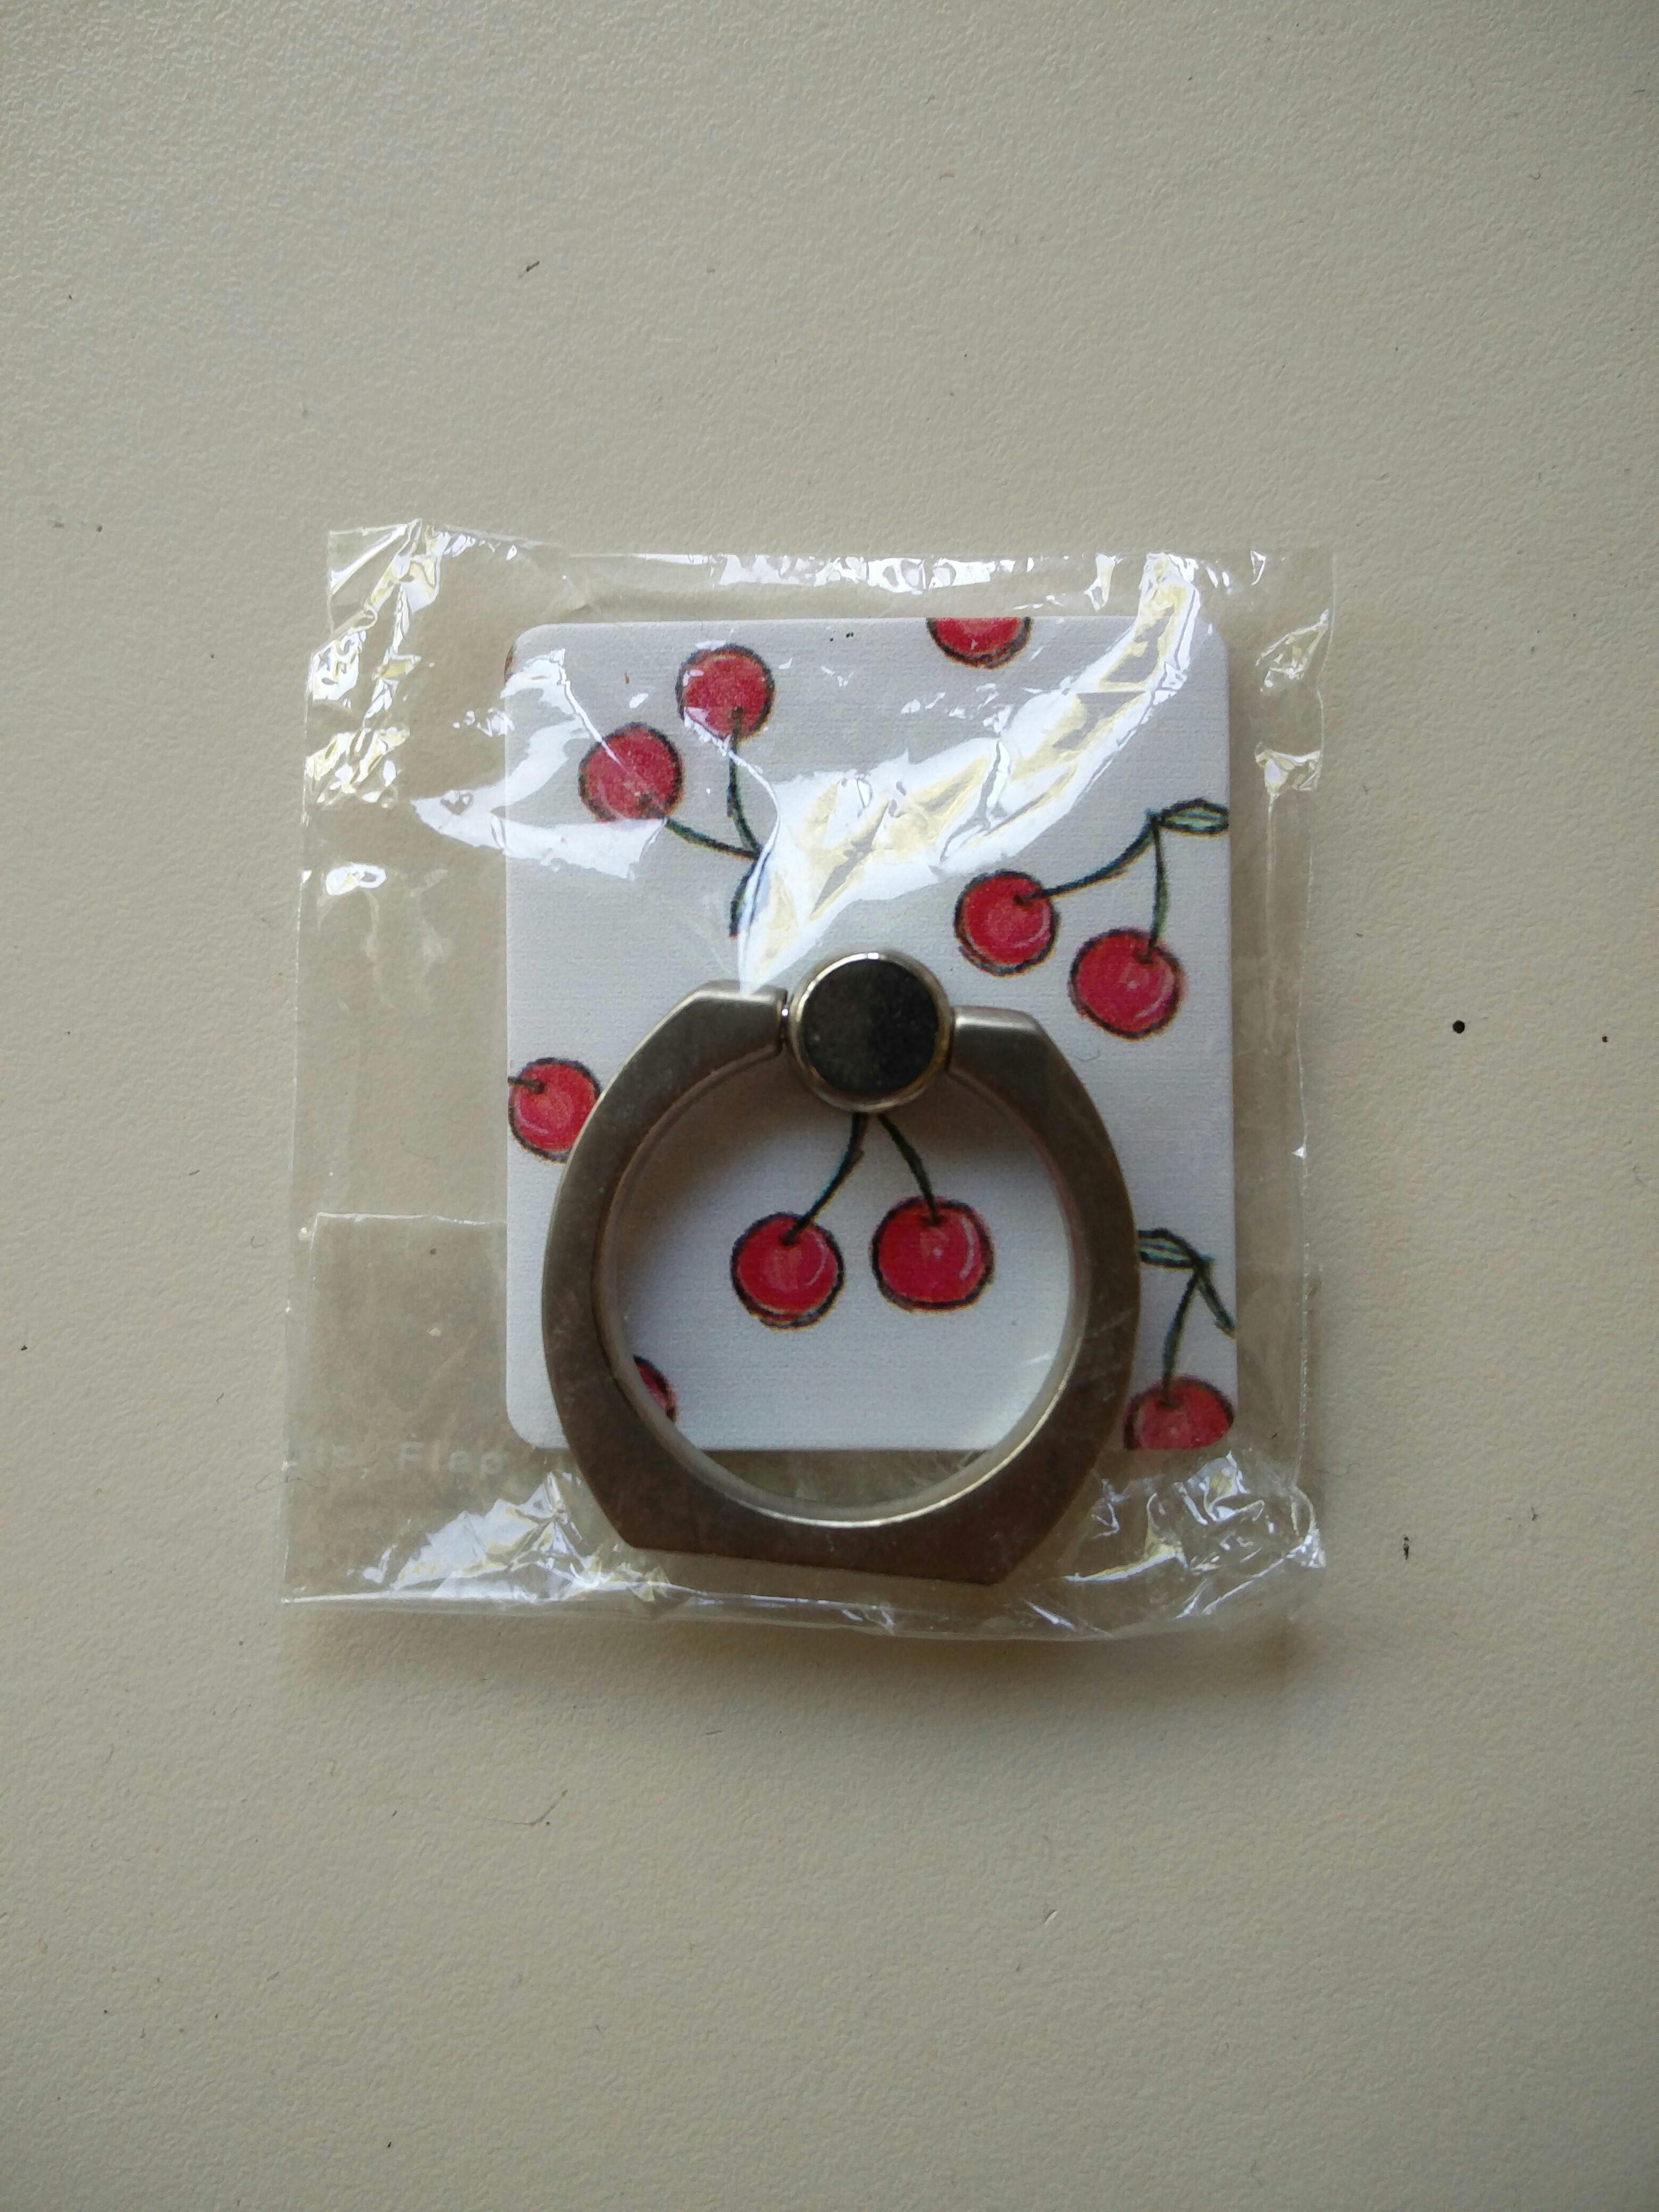 Cute Cherry Accessory for Phone